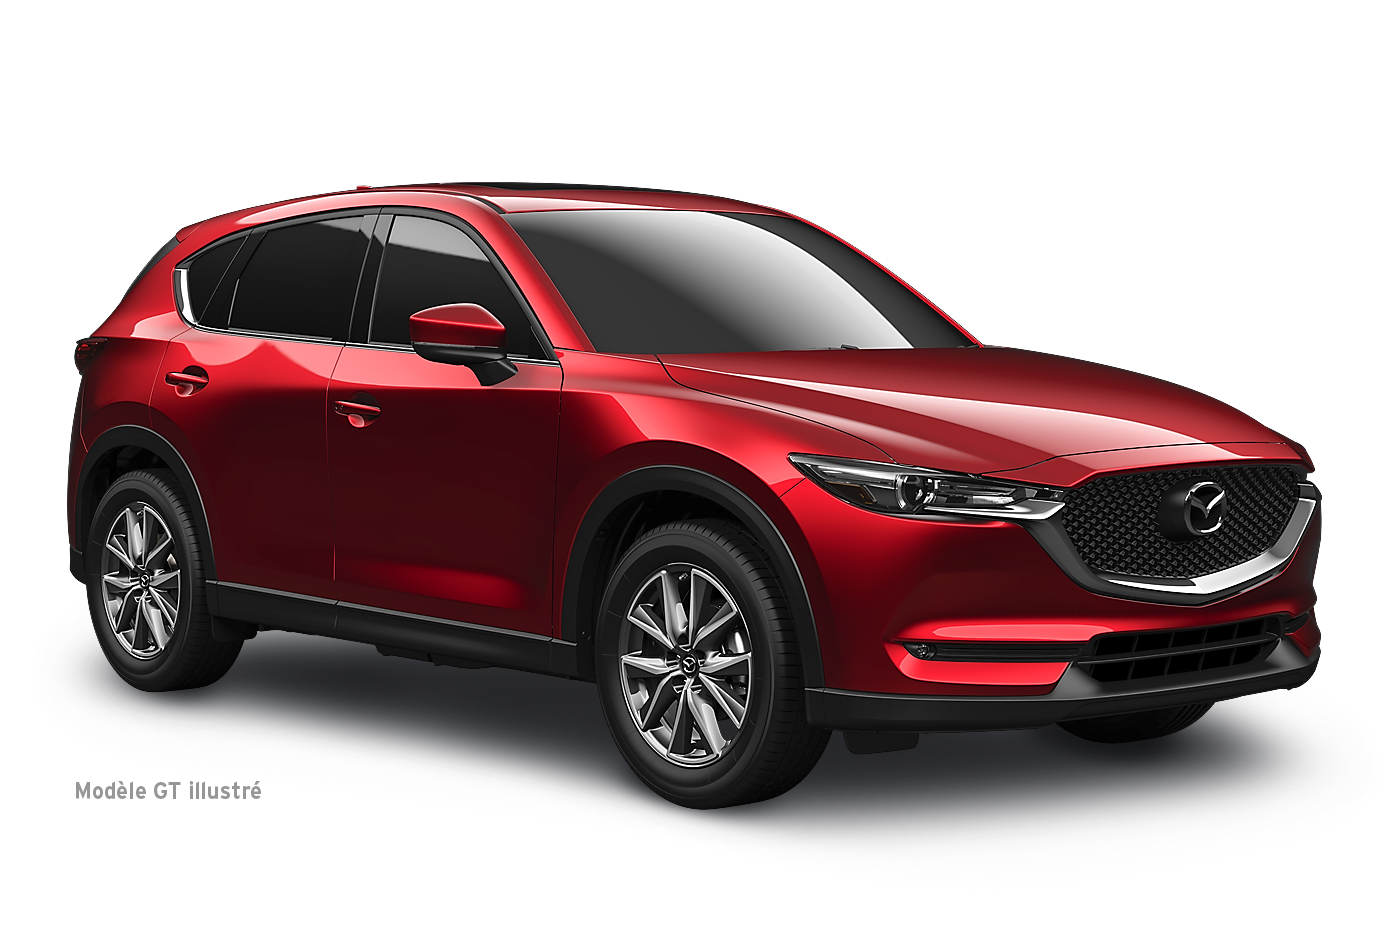 promotion mazda cx 5 gx 2017 bayside mazda beresford. Black Bedroom Furniture Sets. Home Design Ideas